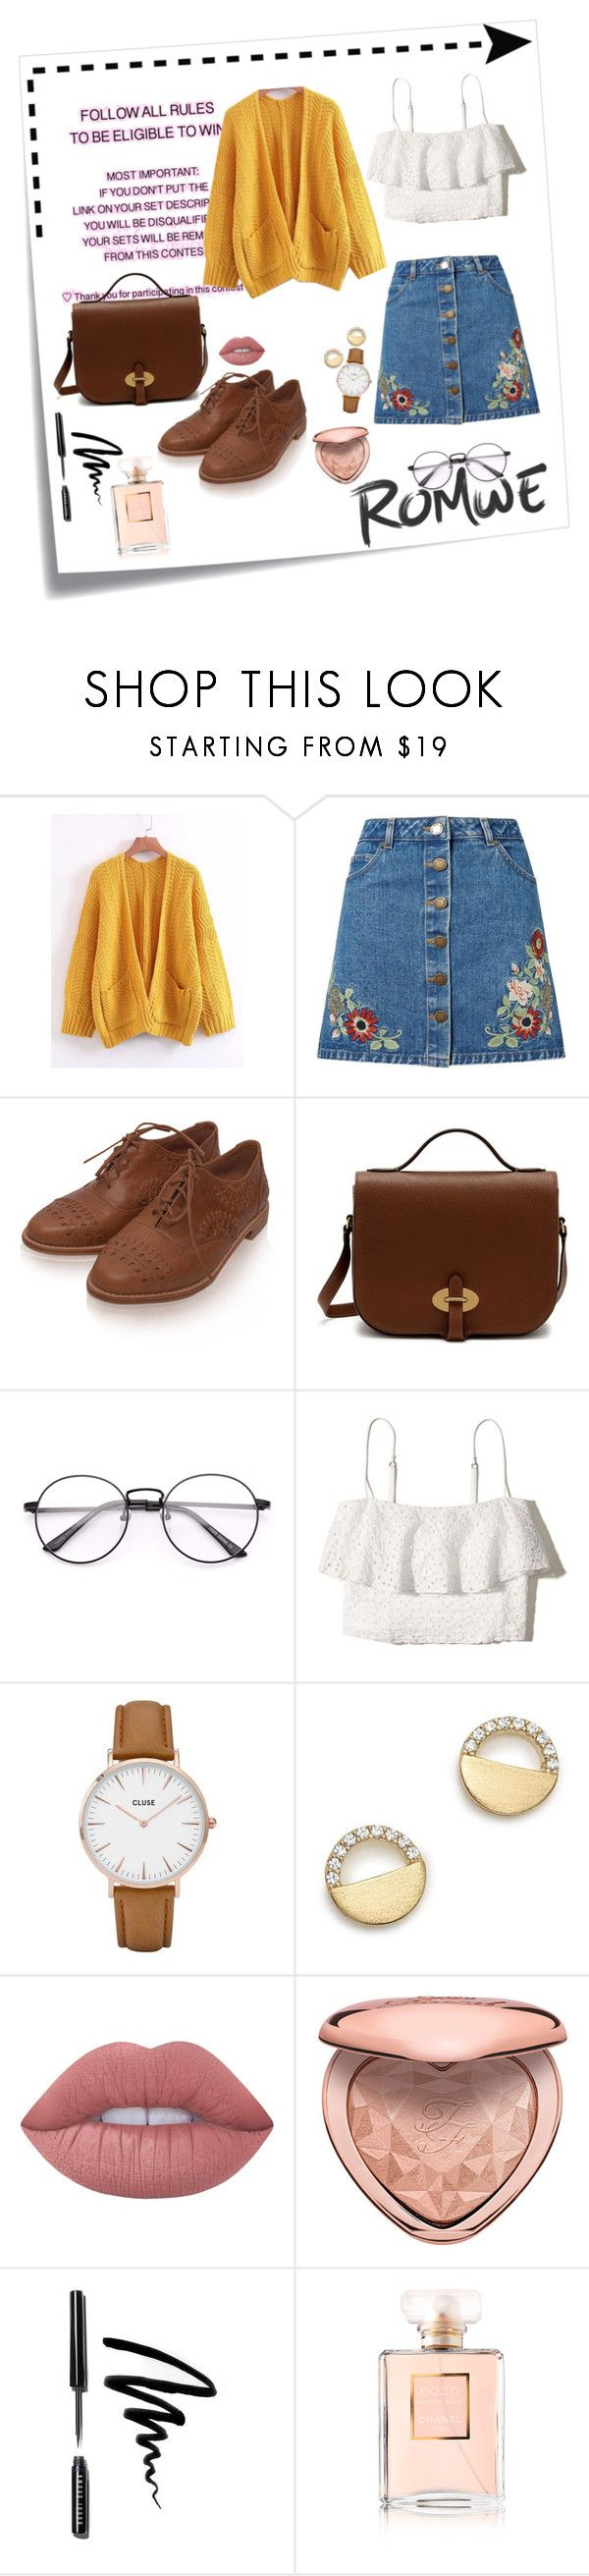 """""""Mustard jumper"""" by gorlmoria ❤ liked on Polyvore featuring Post-It, Miss Selfridge, Mulberry, Hollister Co., CLUSE, Bloomingdale's, Lime Crime, Too Faced Cosmetics, Bobbi Brown Cosmetics and Chanel"""